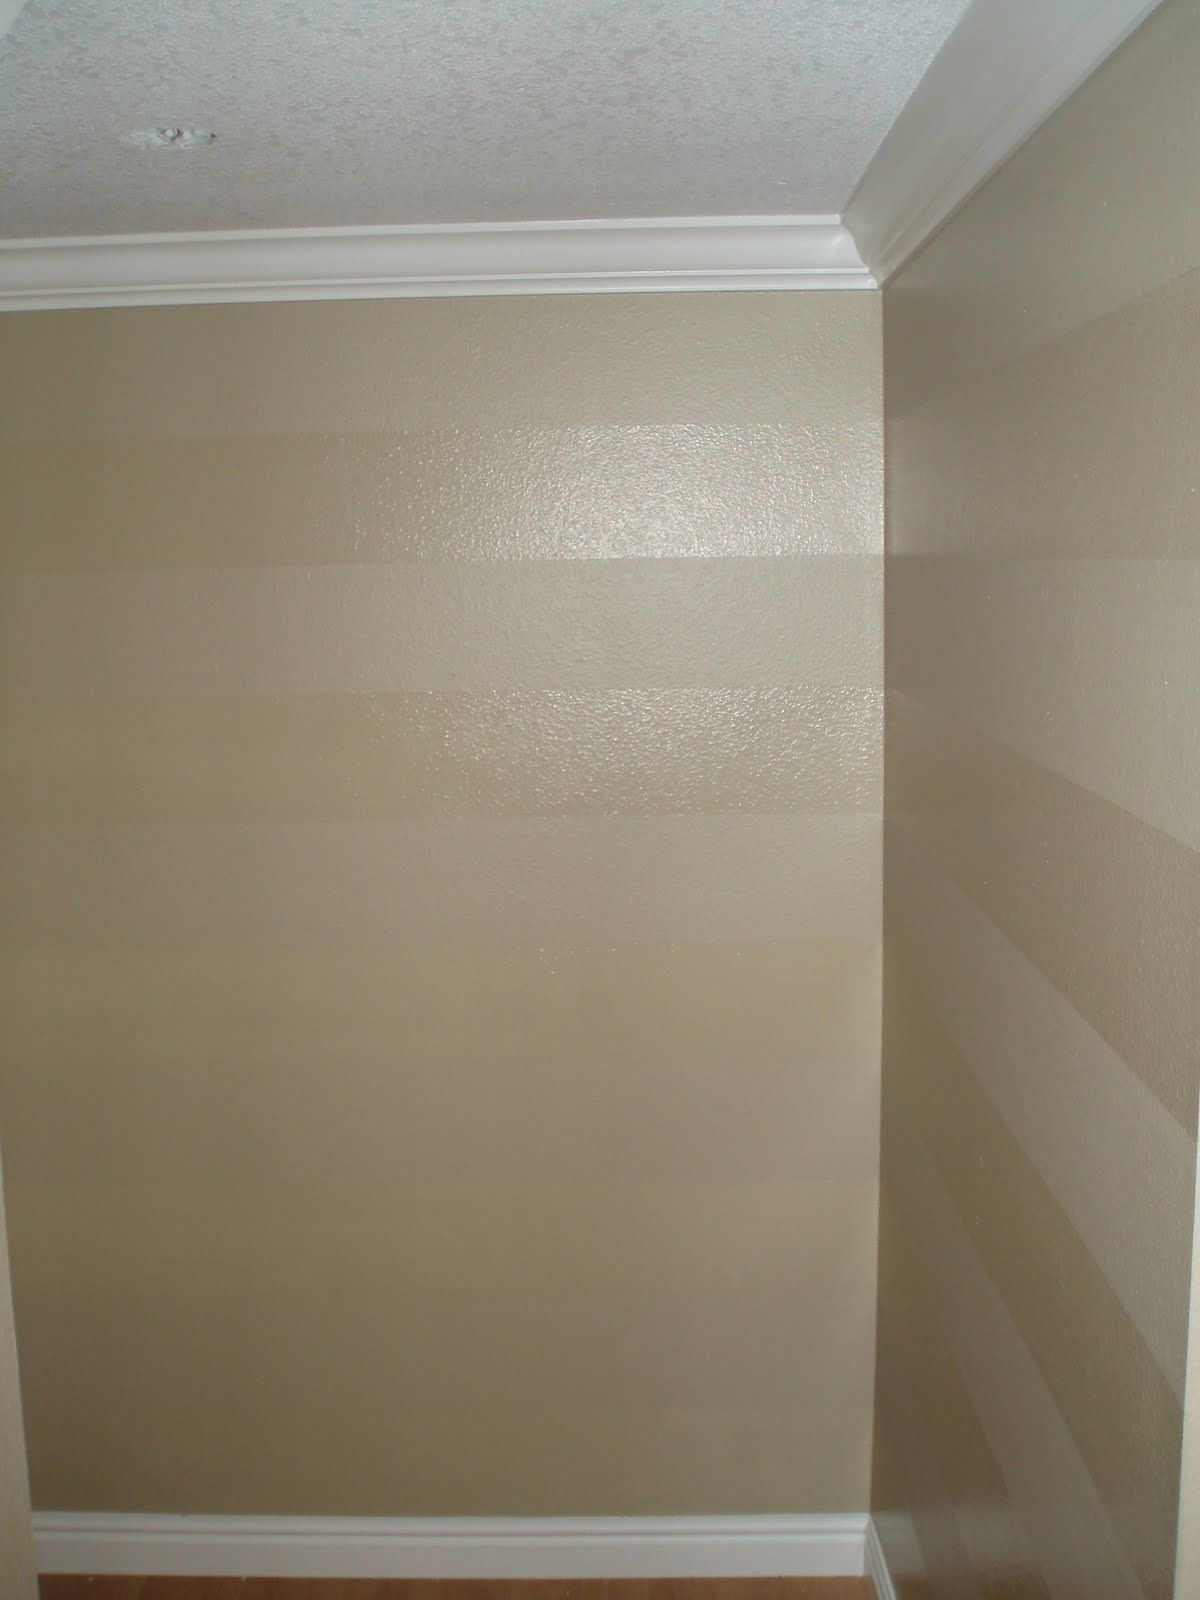 Painting satin design over flat paint easy wall striping - Flat or satin paint for bathroom ...